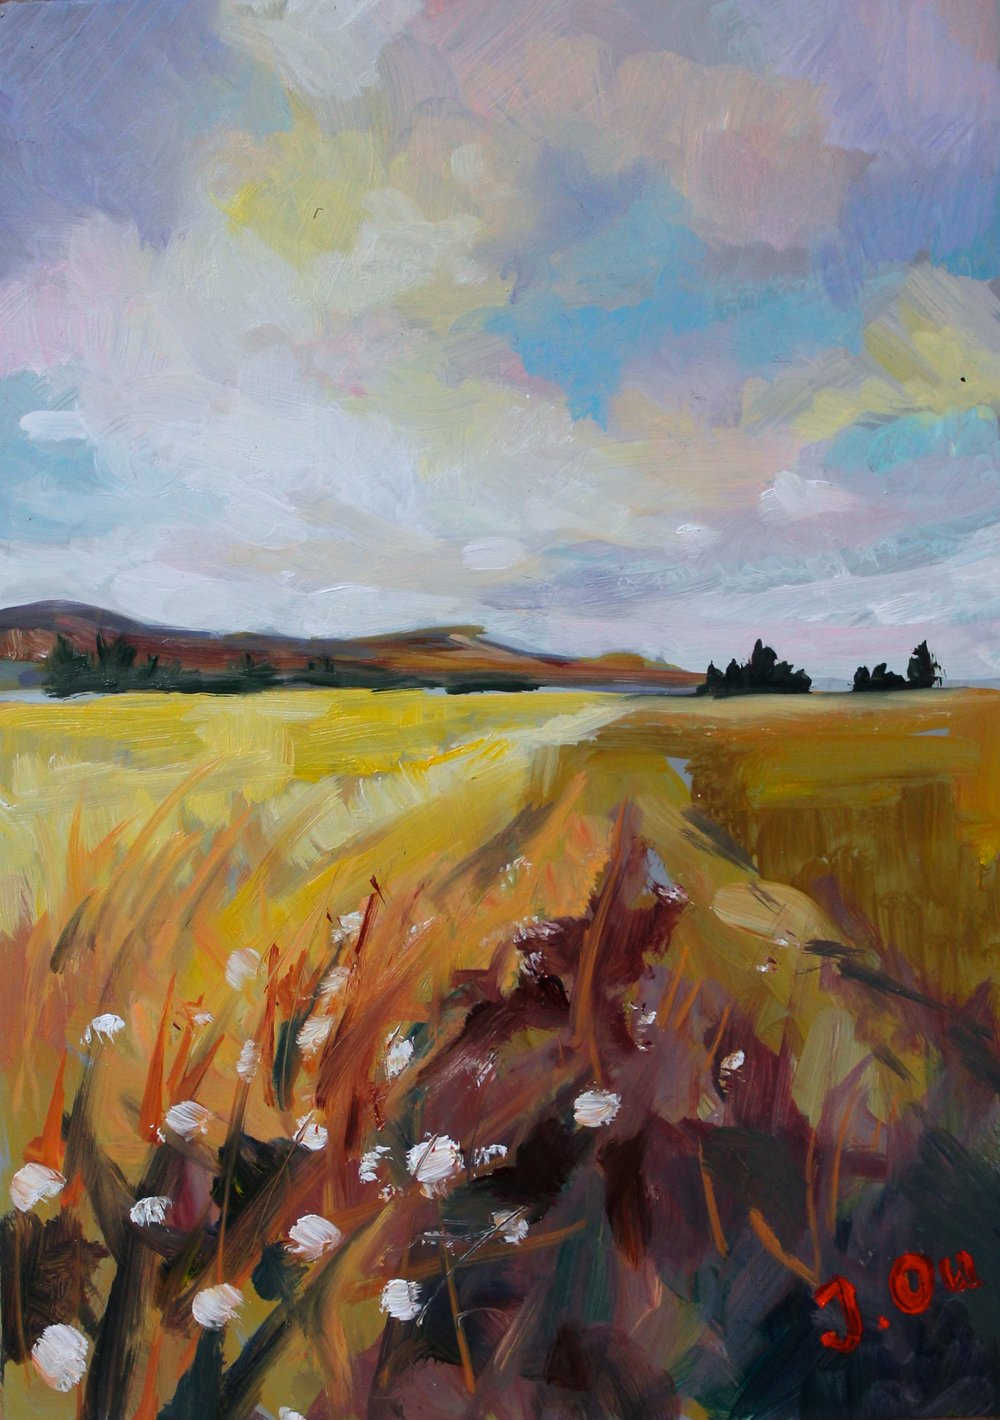 "Fields of Gold 5x7"", oil on panel - SOLD"